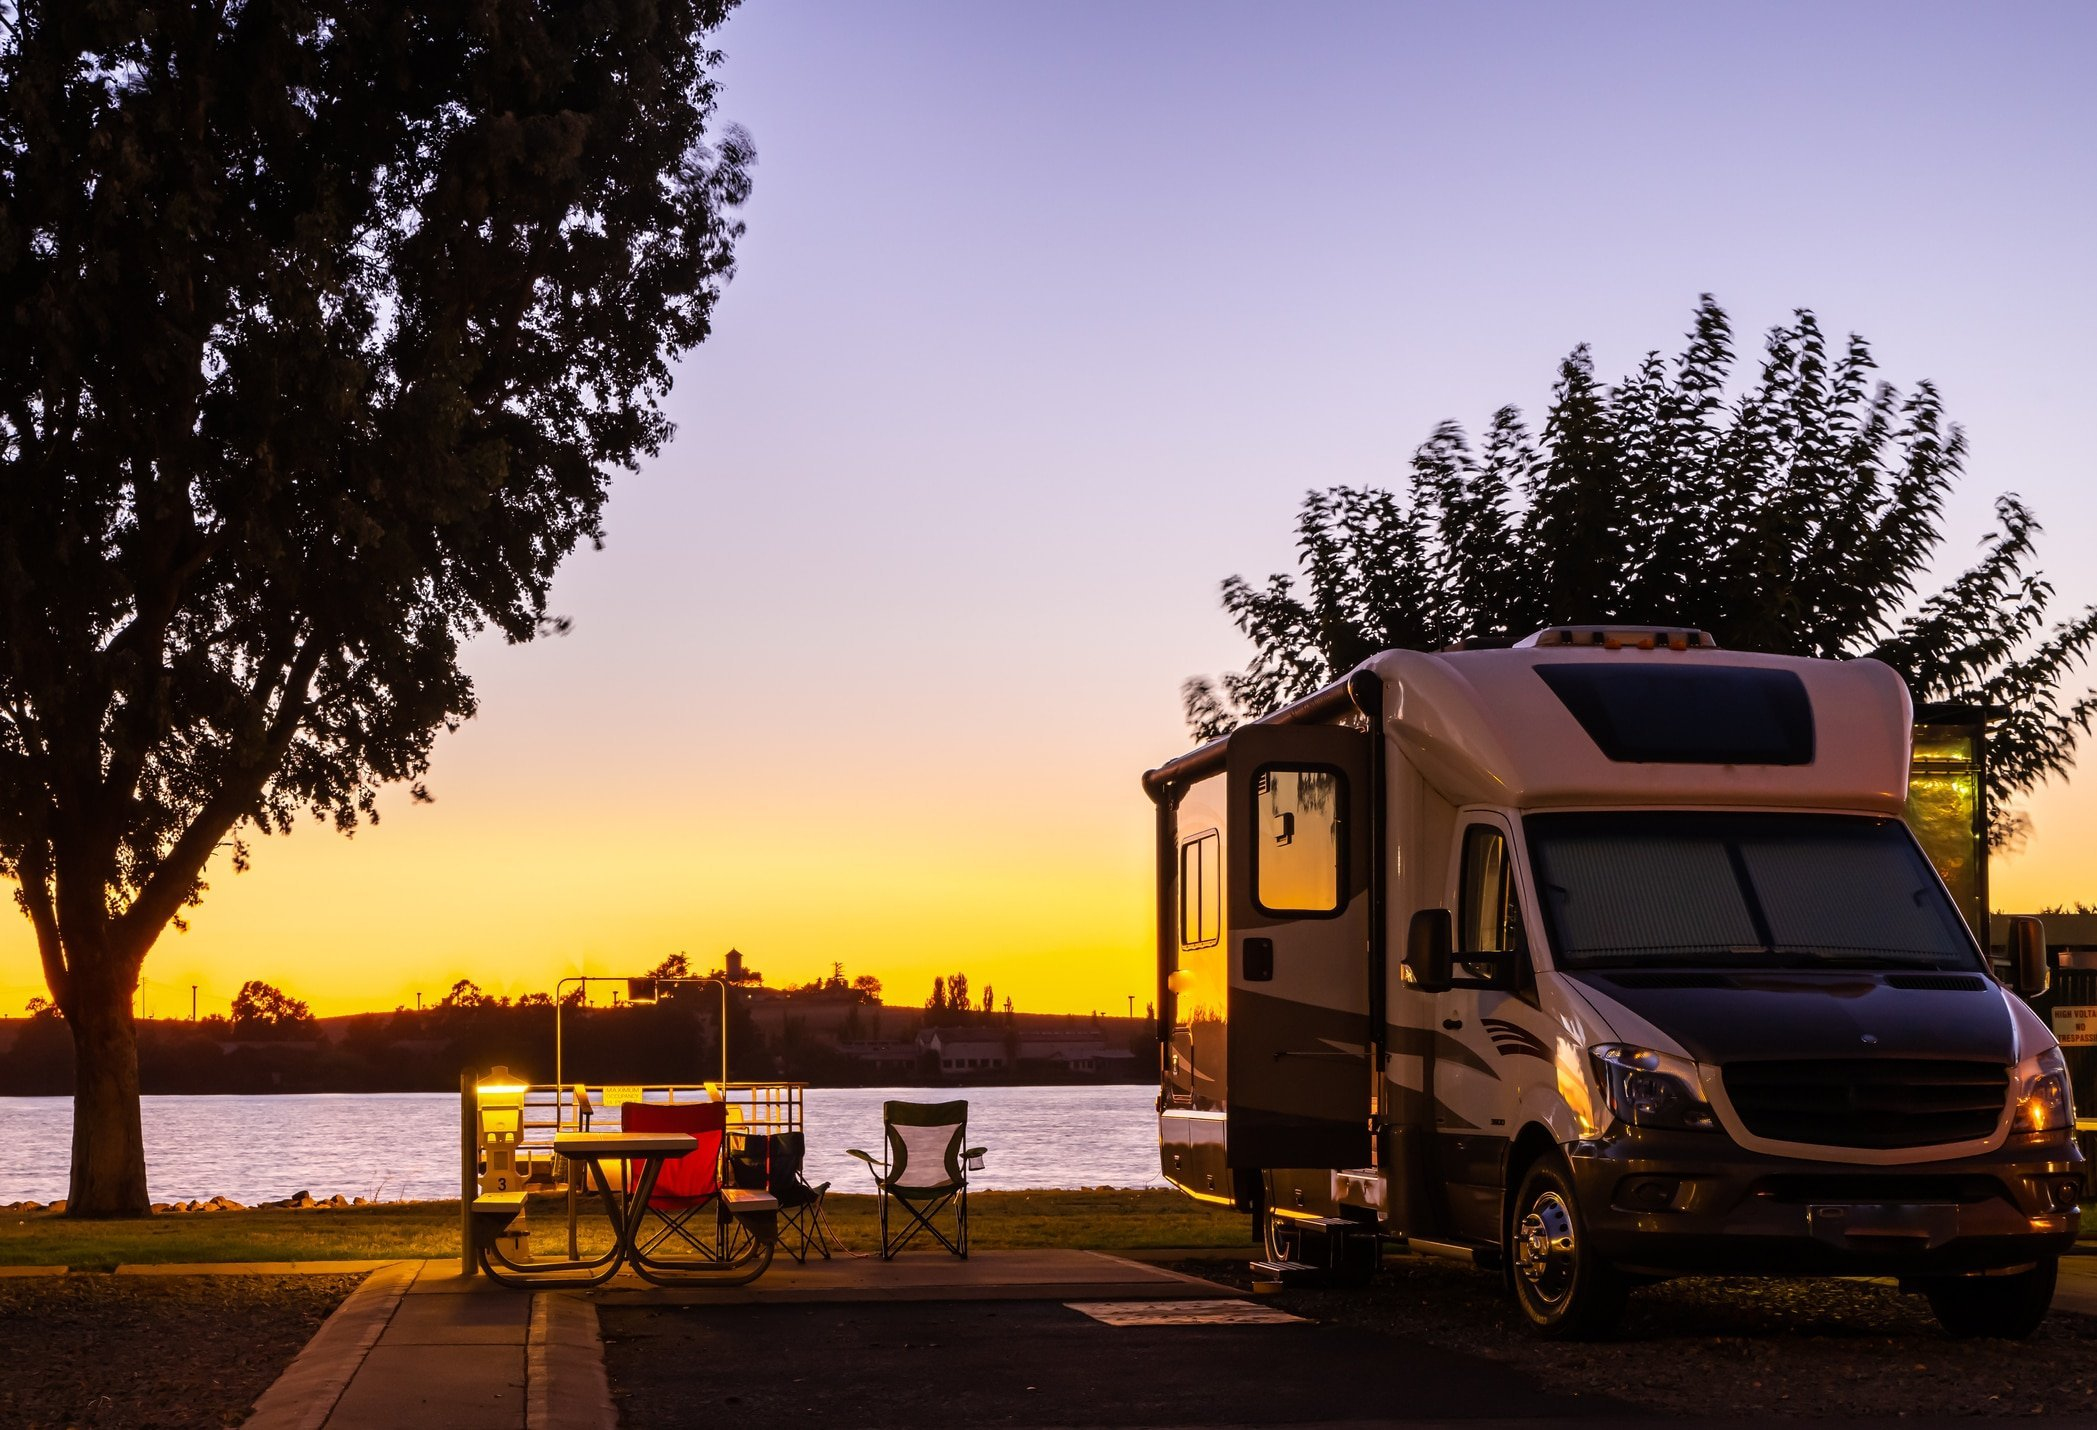 Advantages To Using Your RV As a Basecamp